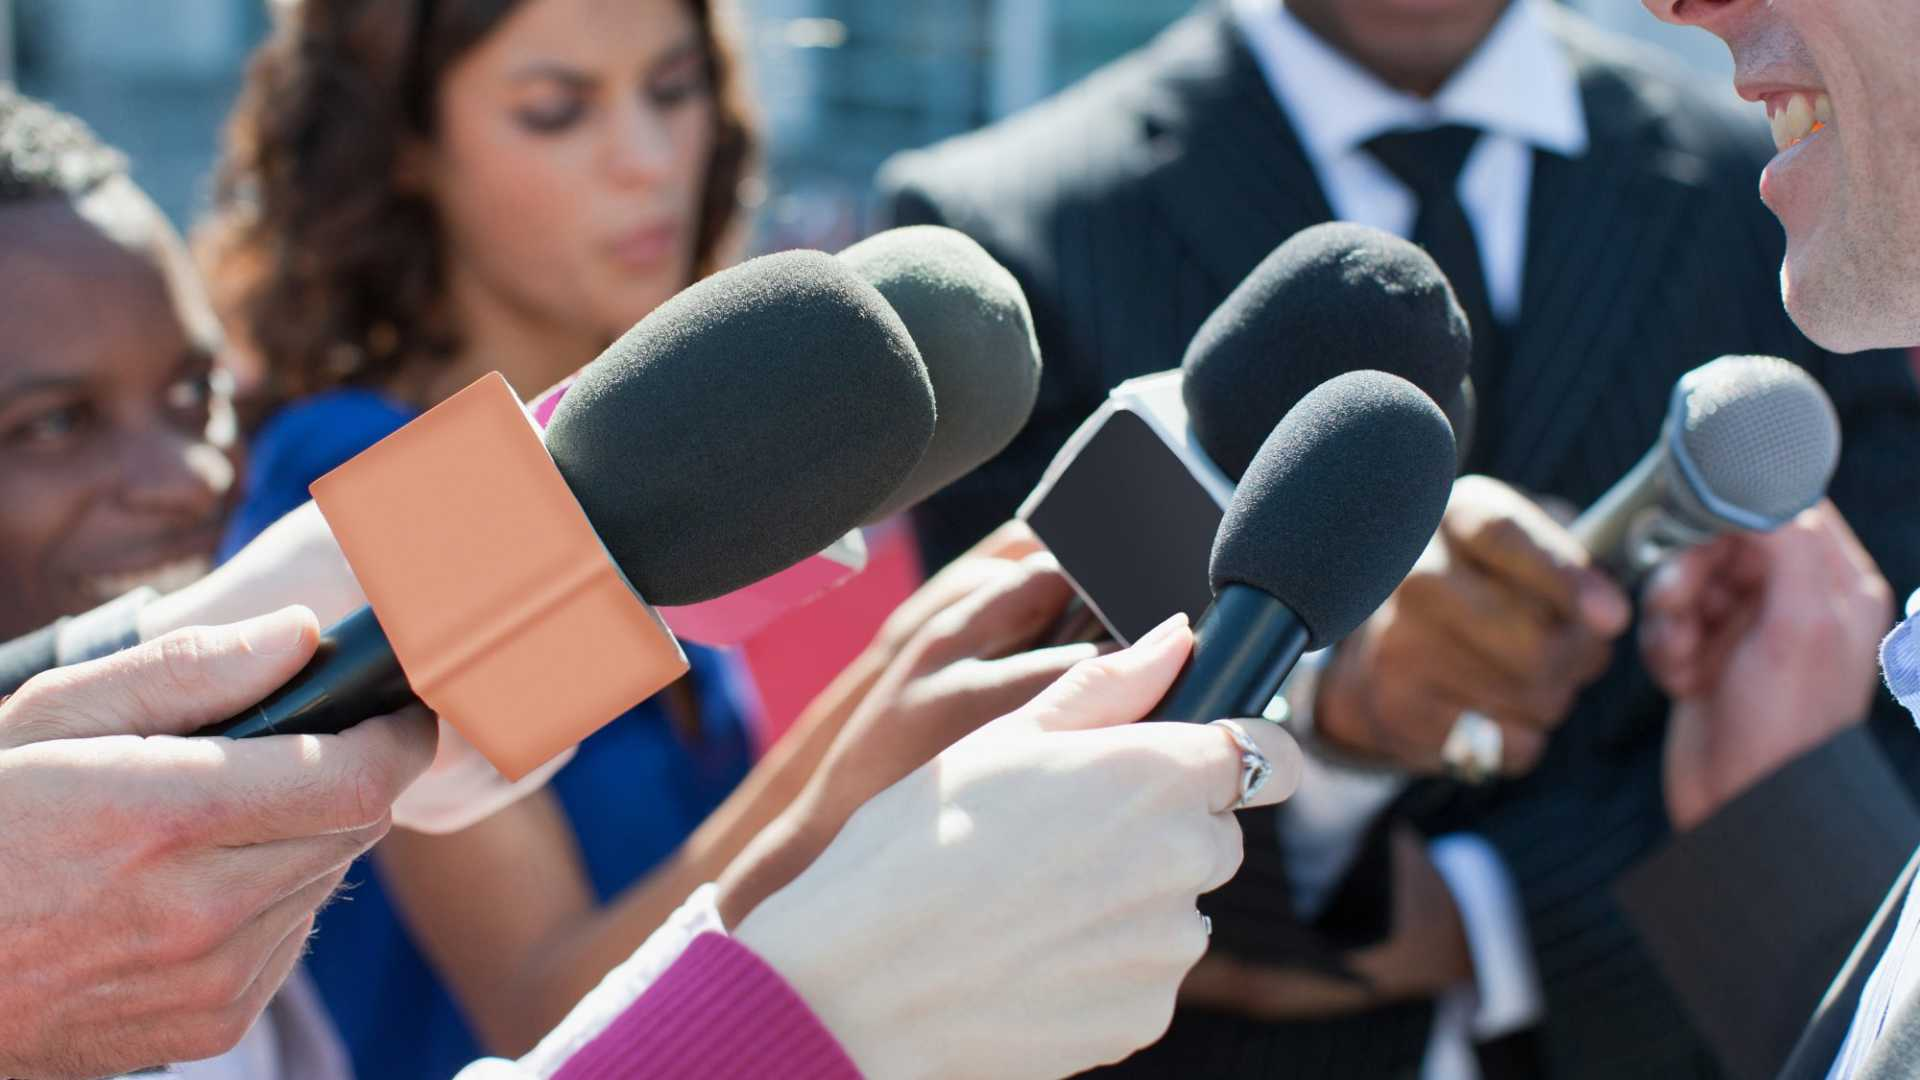 How to Get Press Coverage For Your Product or Service Without a PR Firm